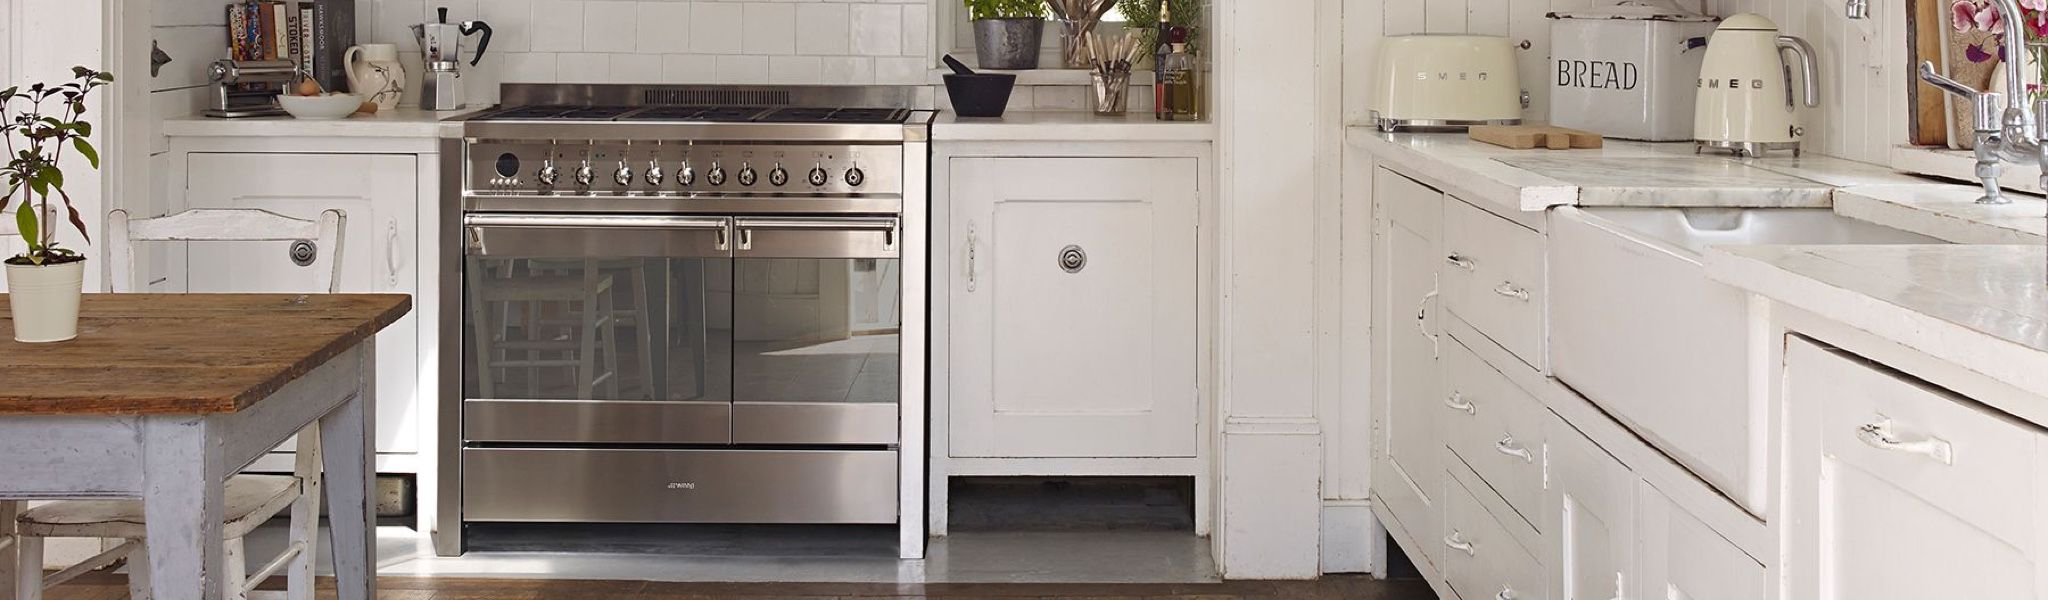 Choosing an oven and hob for your kitchen